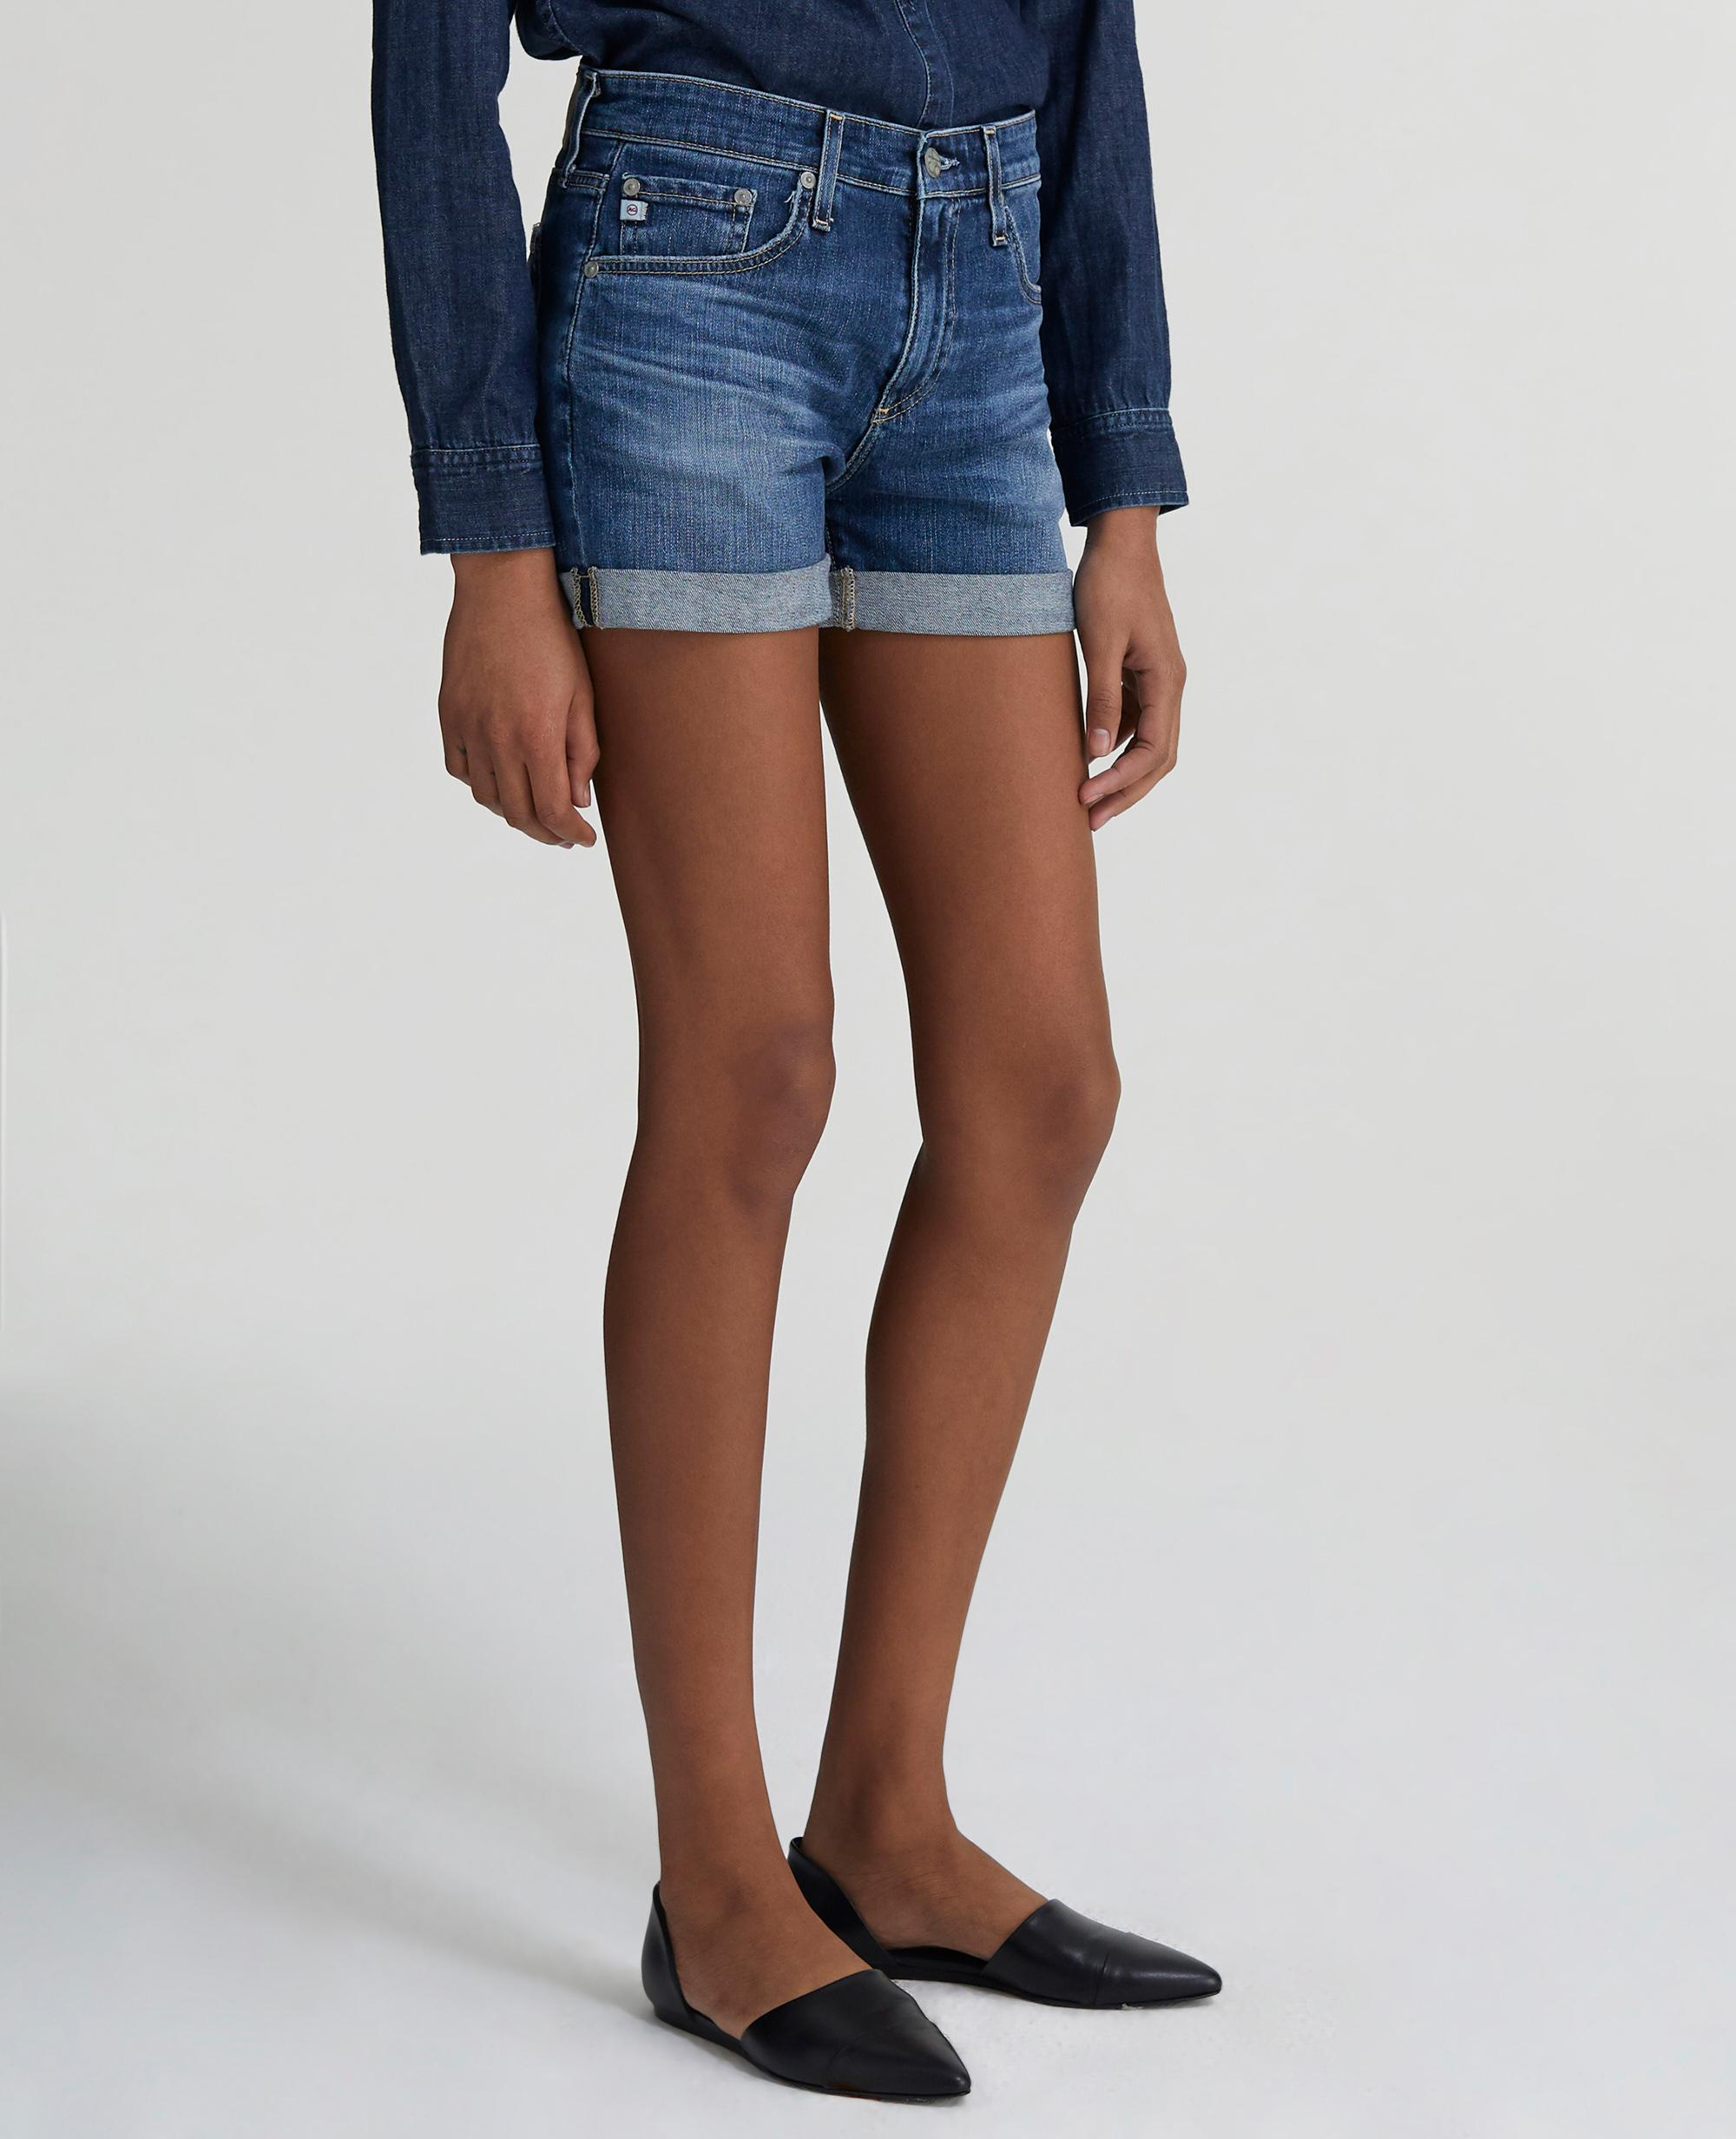 592d8ff486 The Hailey in 18 Years Indigo City AG Jeans Official Store